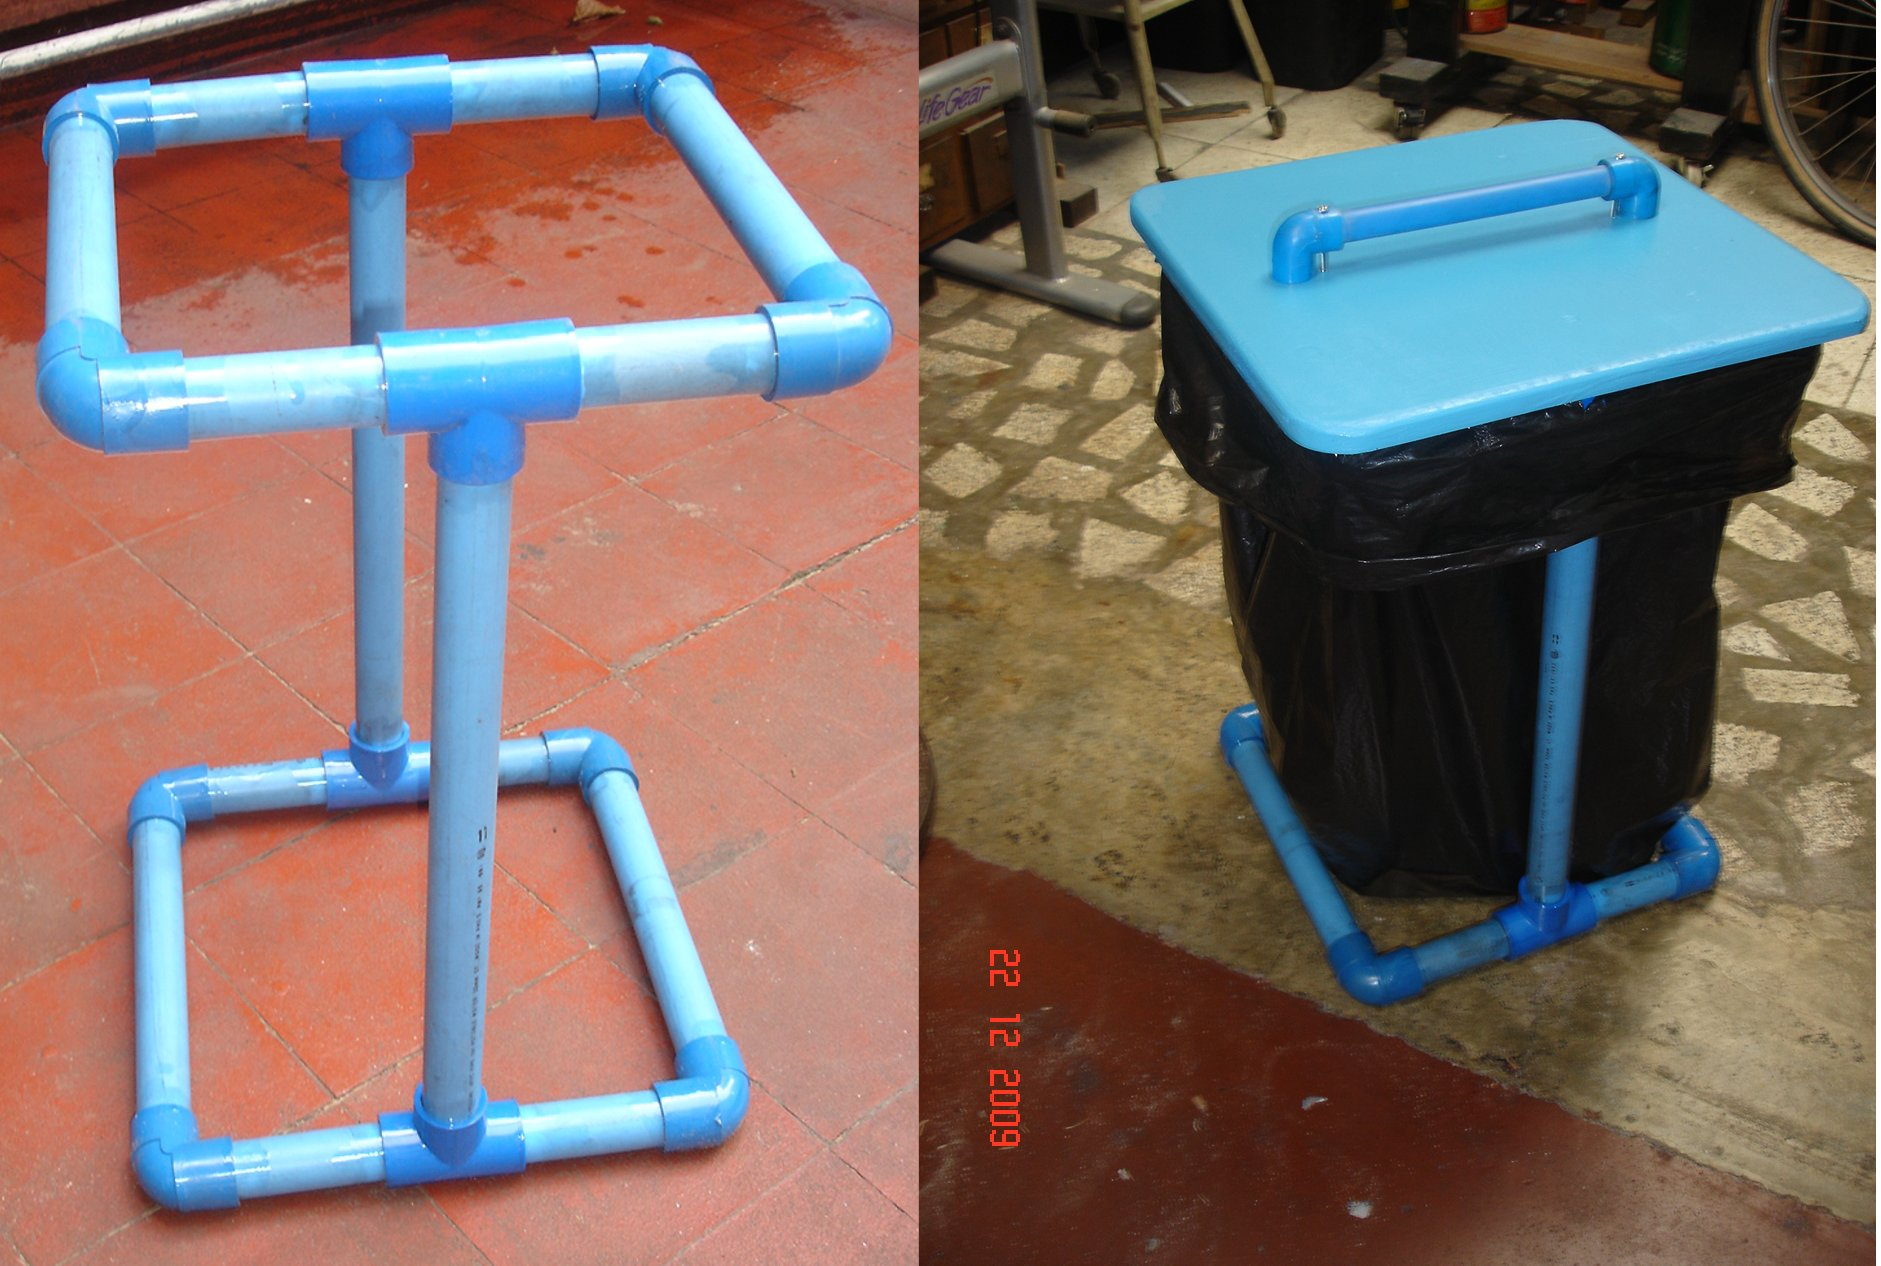 TRASHBAGHOLDER Build a PVC Trashbag Holder